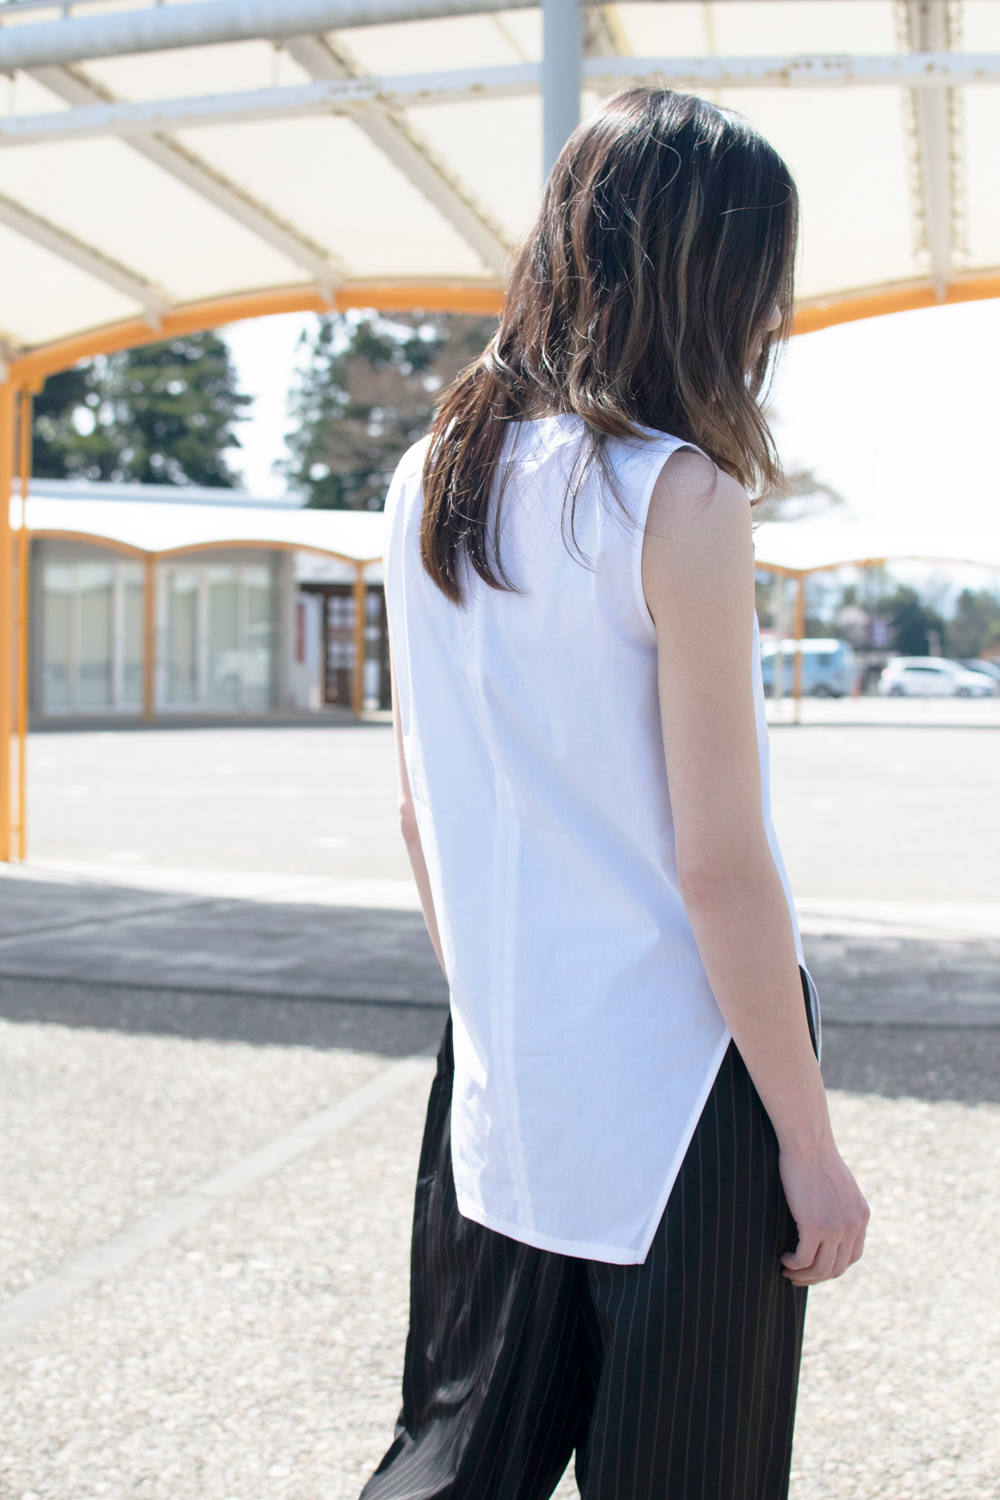 【19SS】Equilibre Tank Blouse / エキリーブルタンクブラウス [WHITE] / SH06W